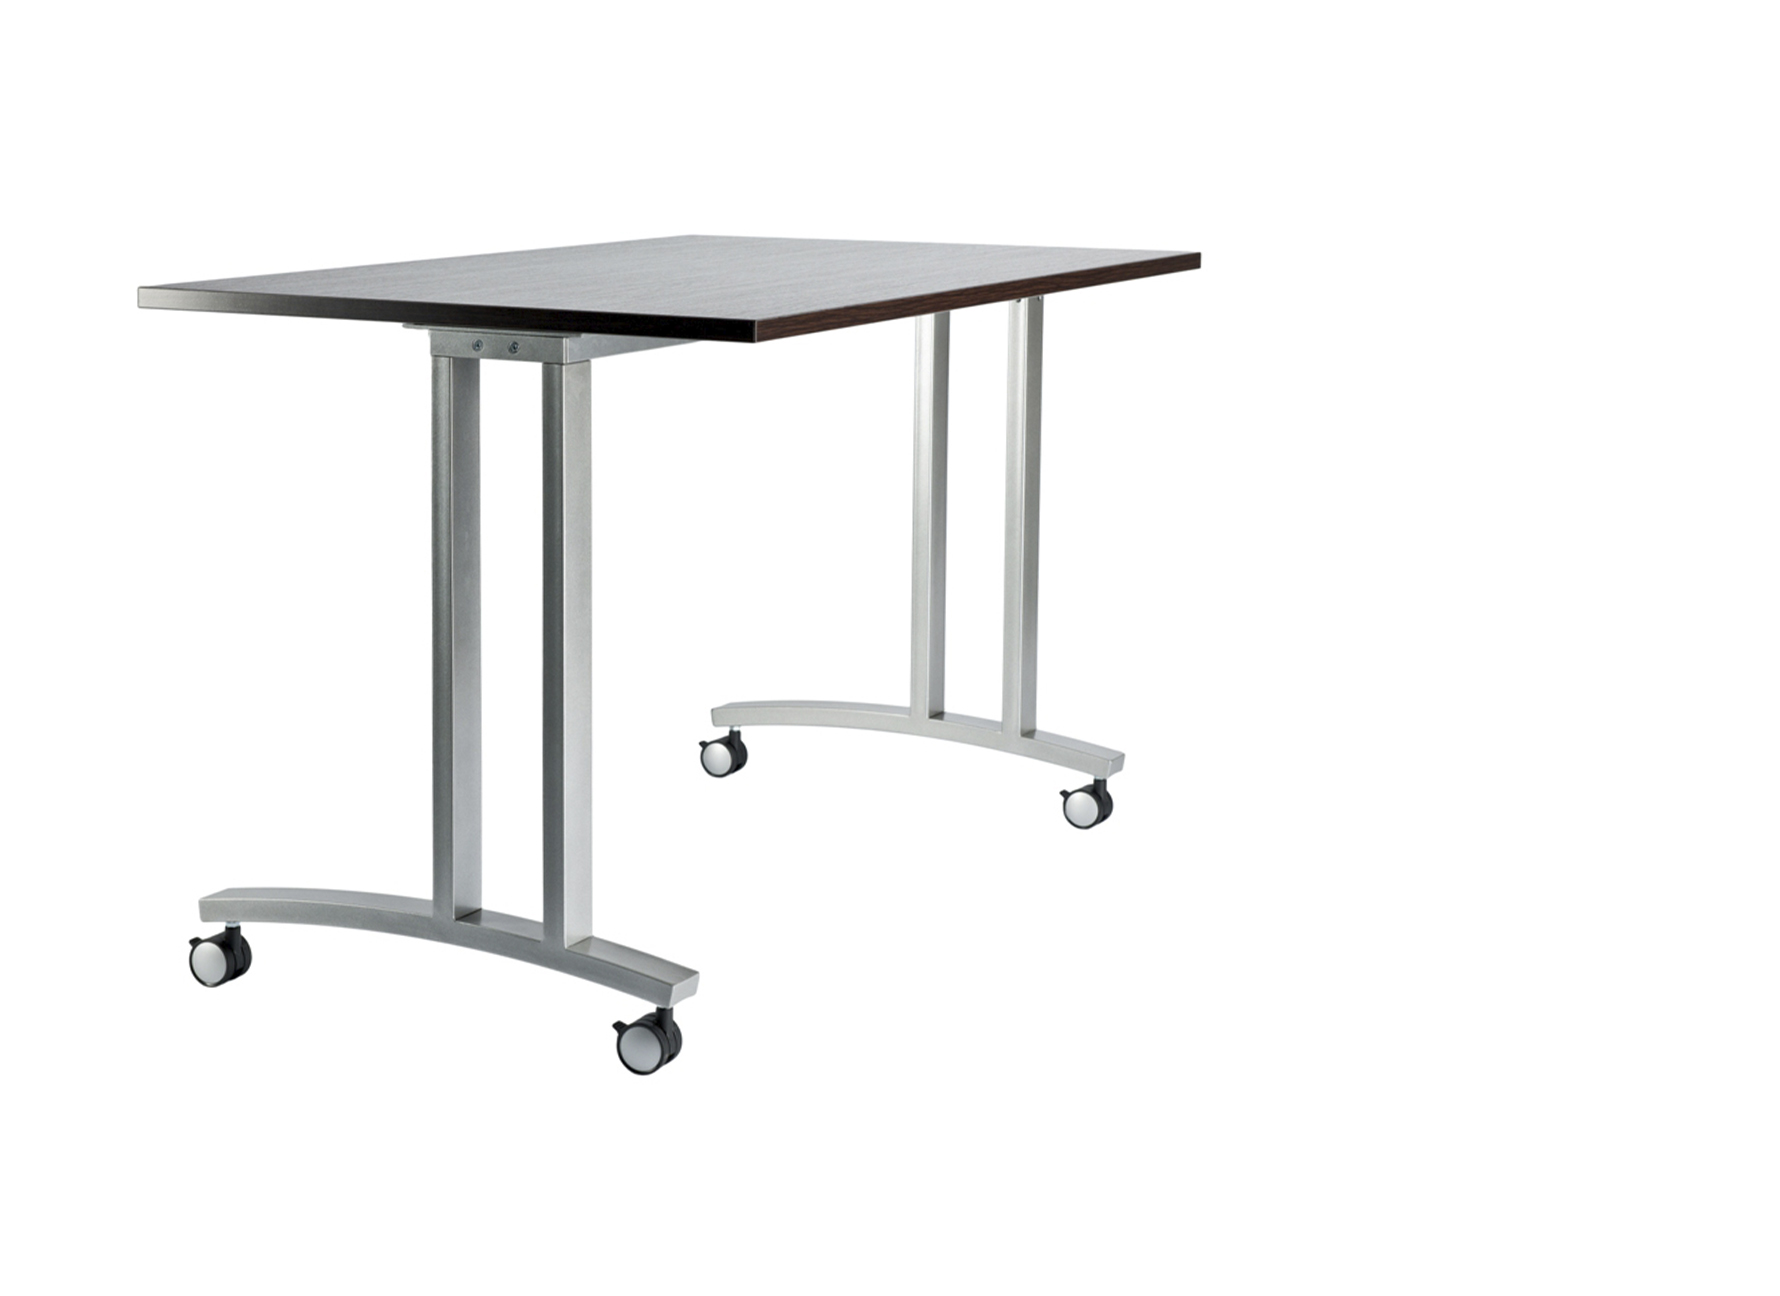 Metal frames for folding tables